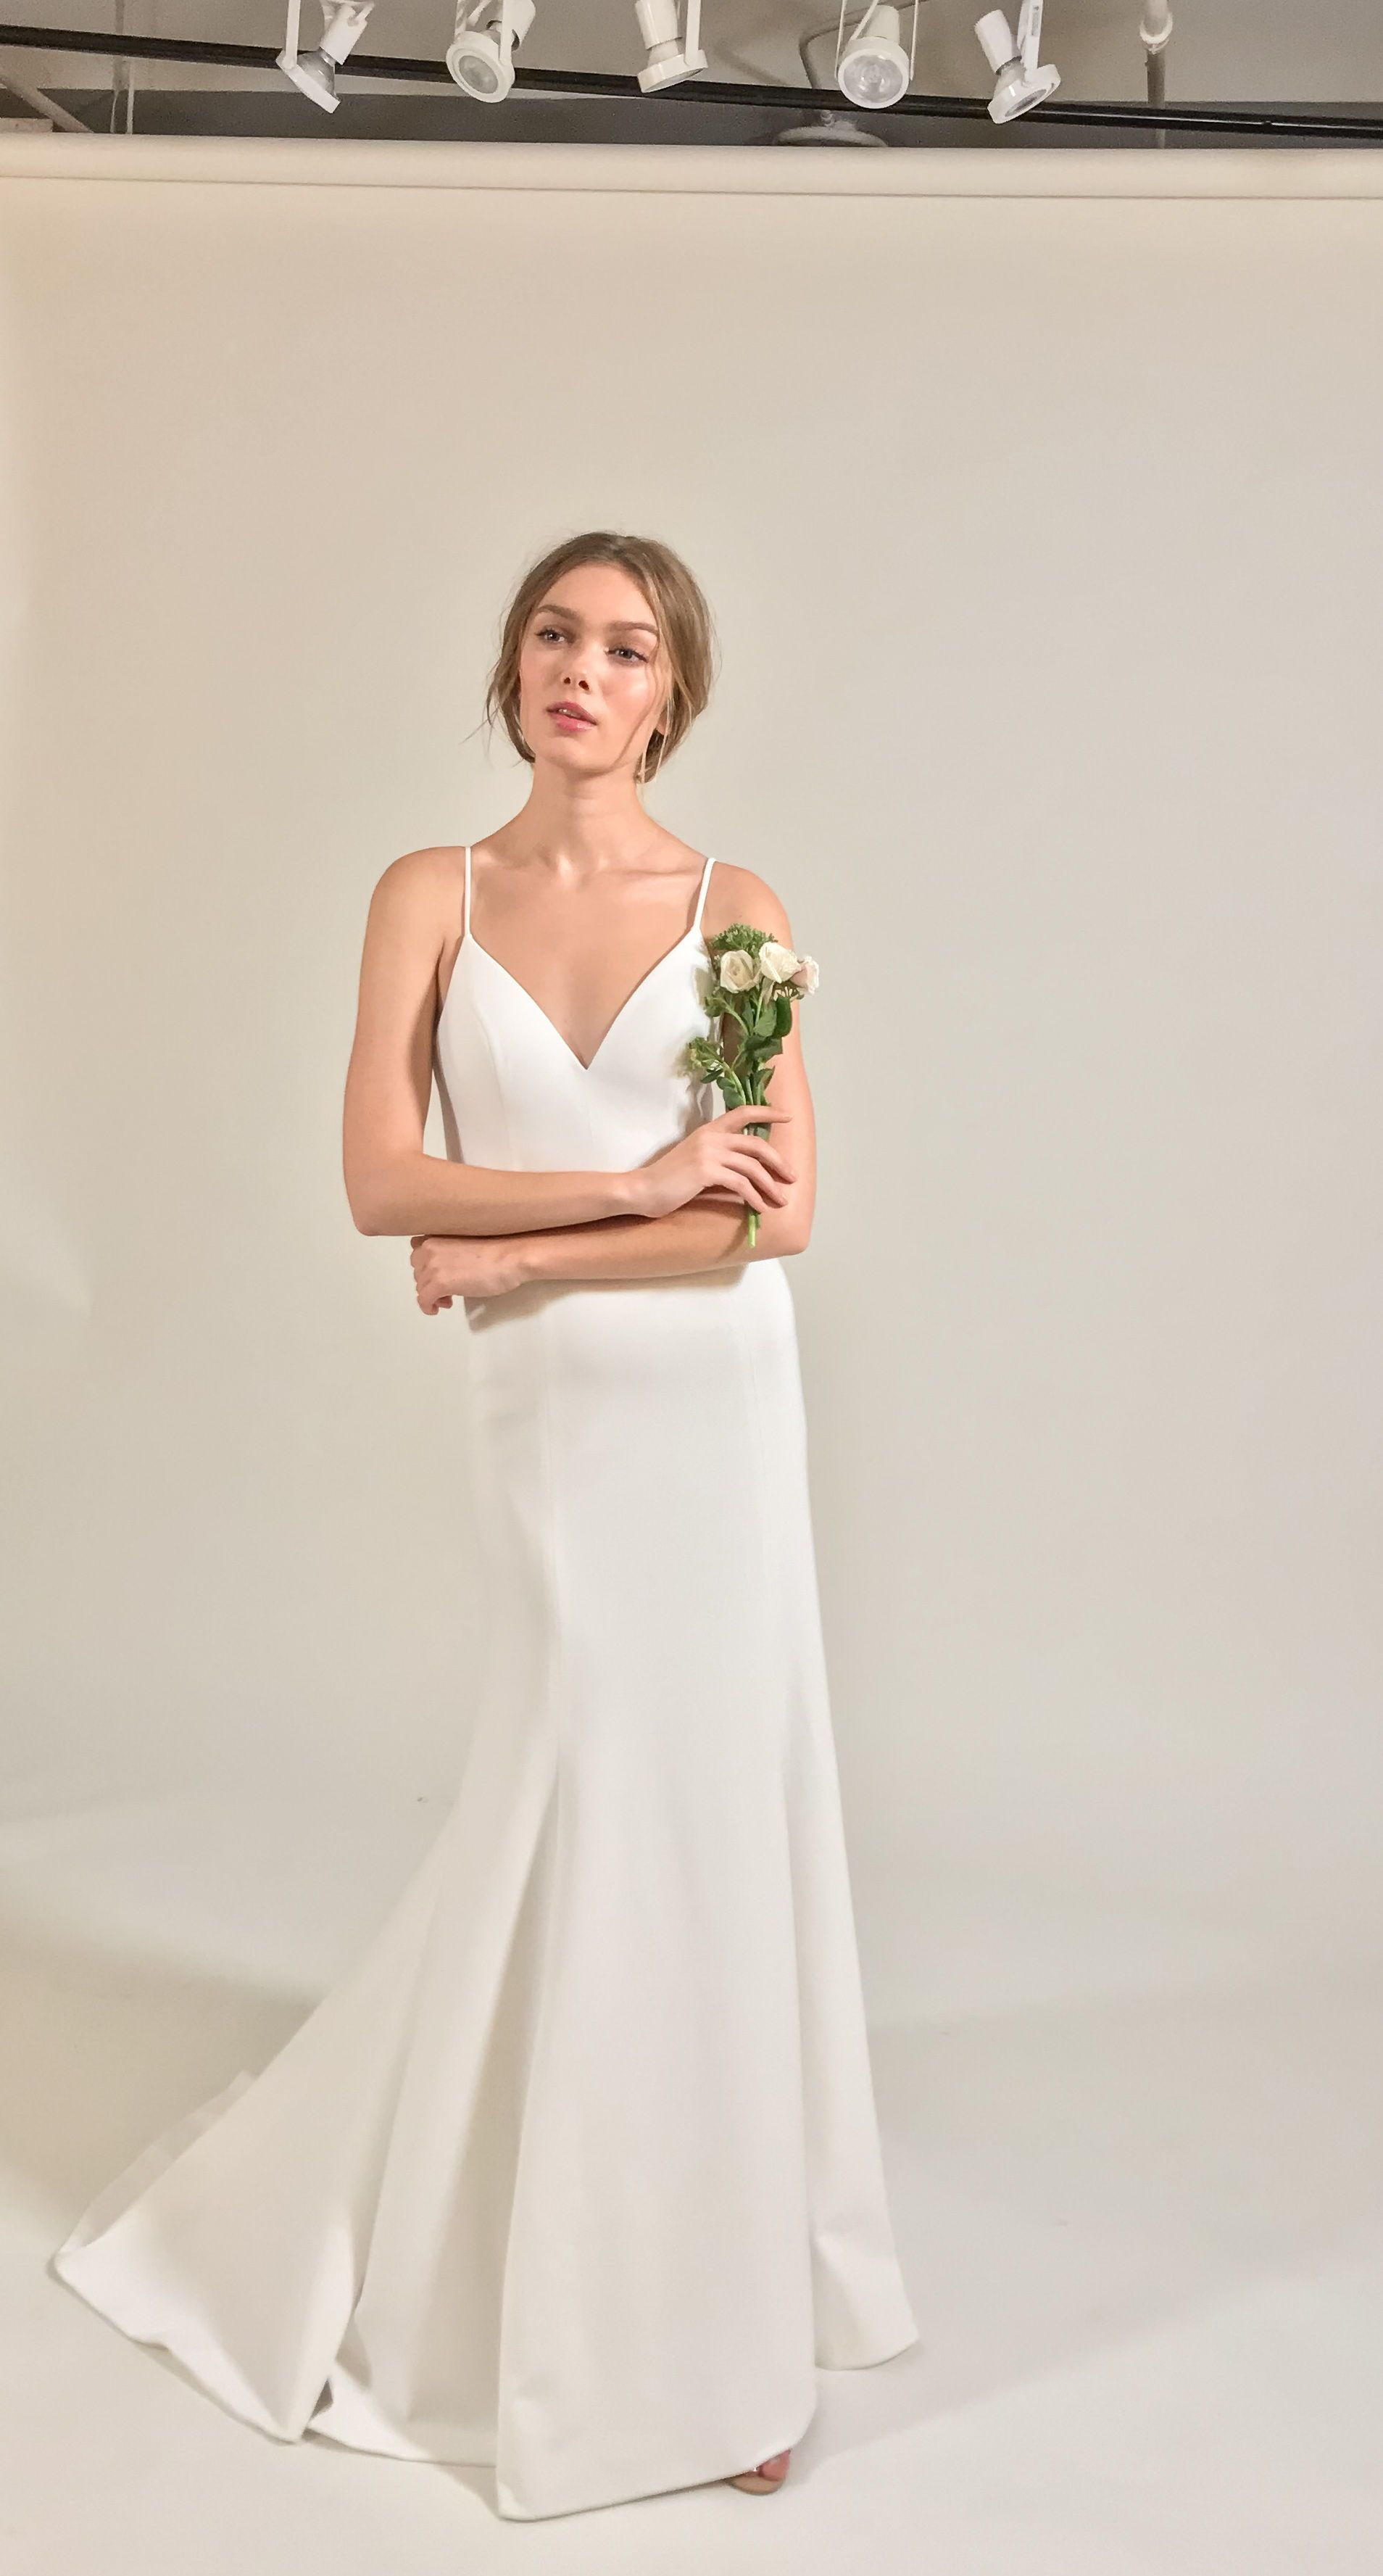 Plain Simple This Wedding Dress Is Chic The Whitley Gown By Jenny By Jenny Yoo 2019 Fit And Flare Wedding Dress Trendy Wedding Dresses Fitted Wedding Dress [ 3553 x 1908 Pixel ]